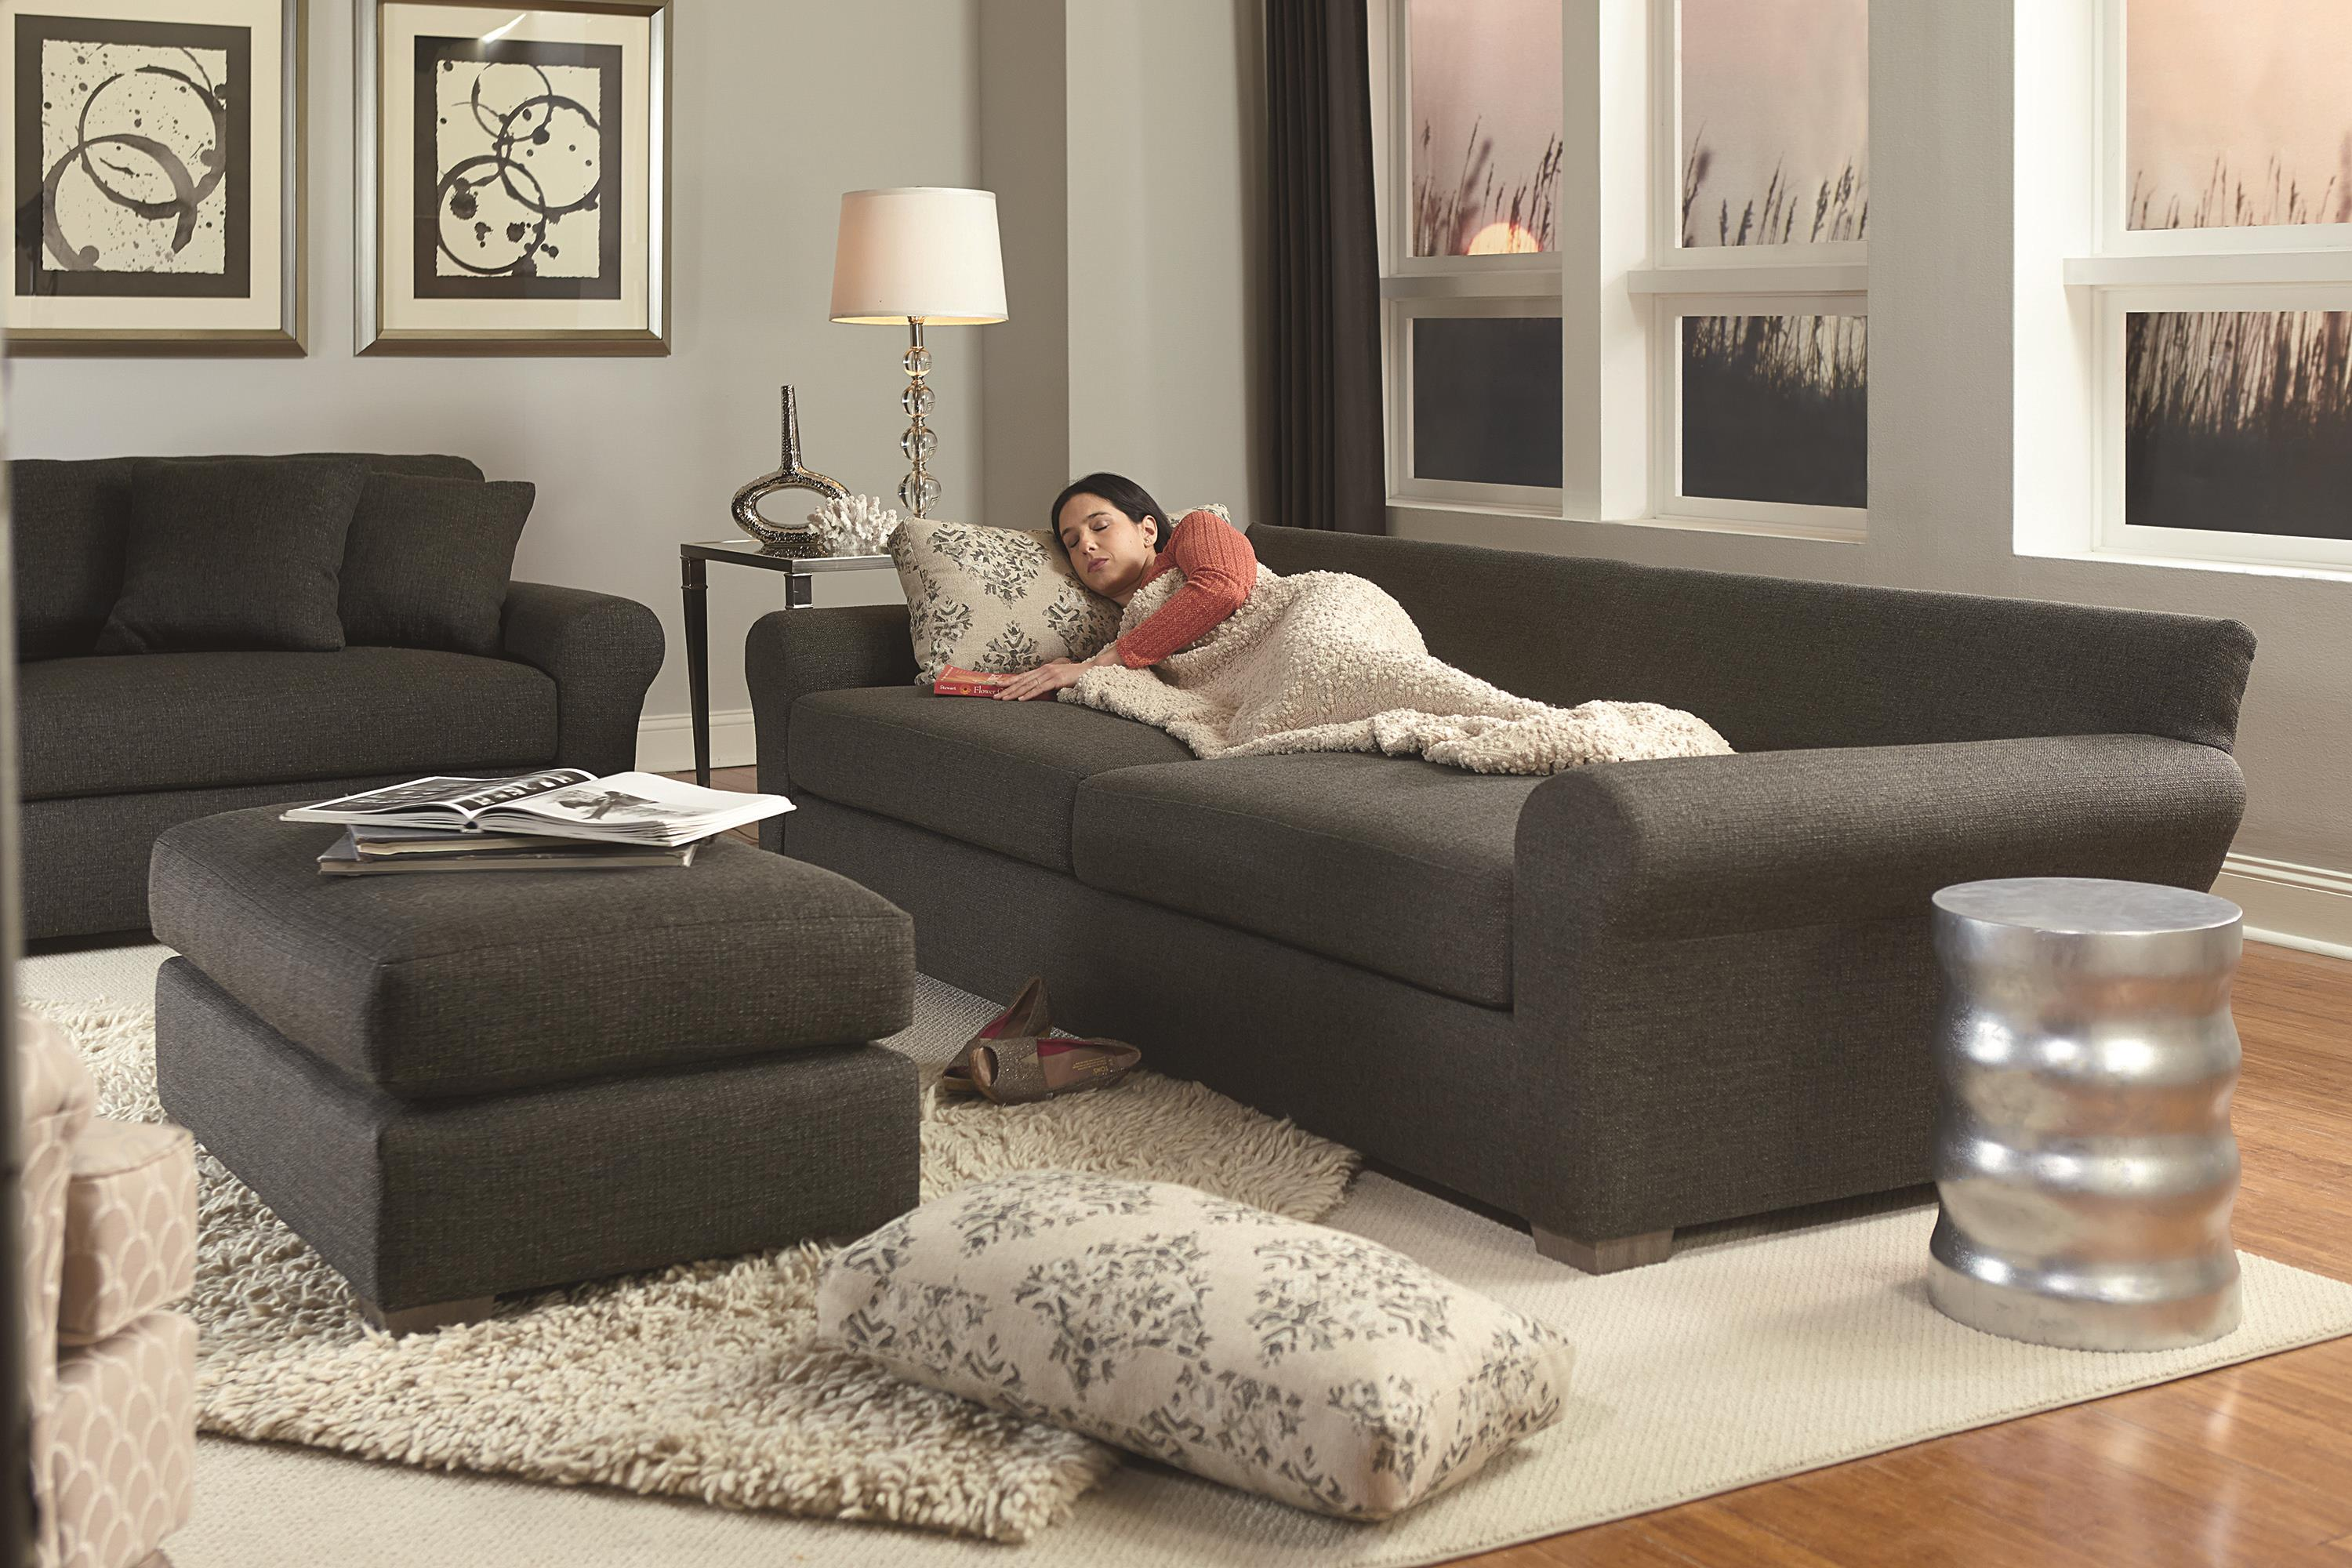 Best Home Furnishings Sophia S69 Transitional Wide Sofa With Removable Cushions Hudson 39 S